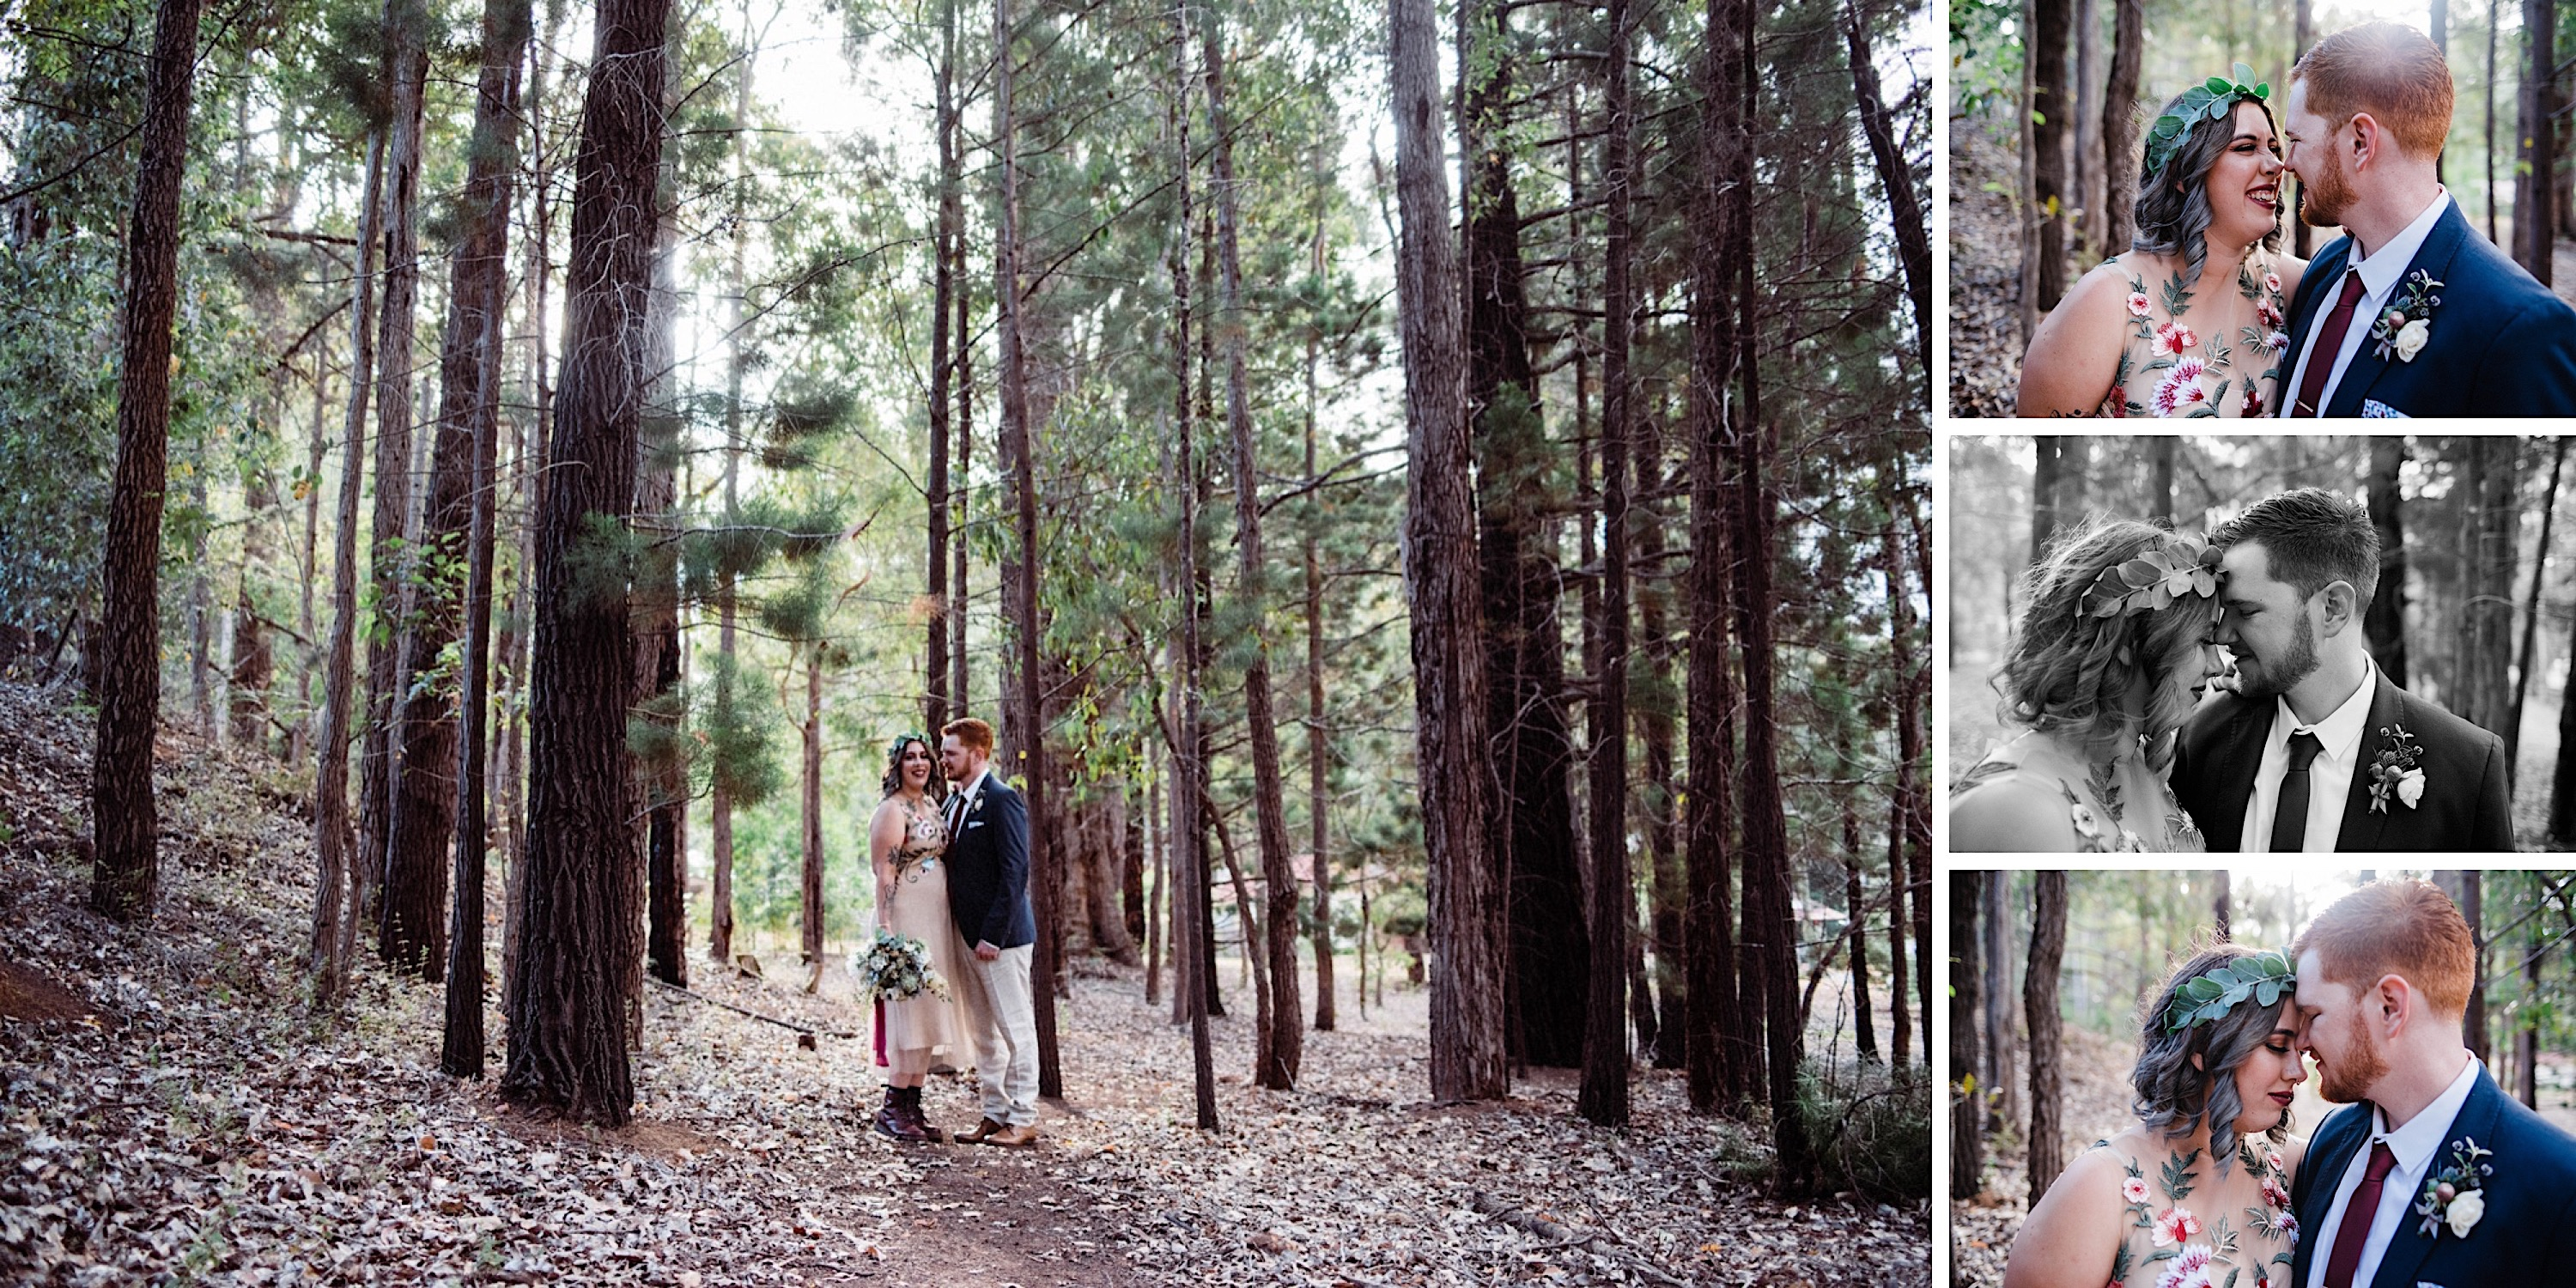 Donnelly River Wedding Photography of the bride & groom in a pine forest.